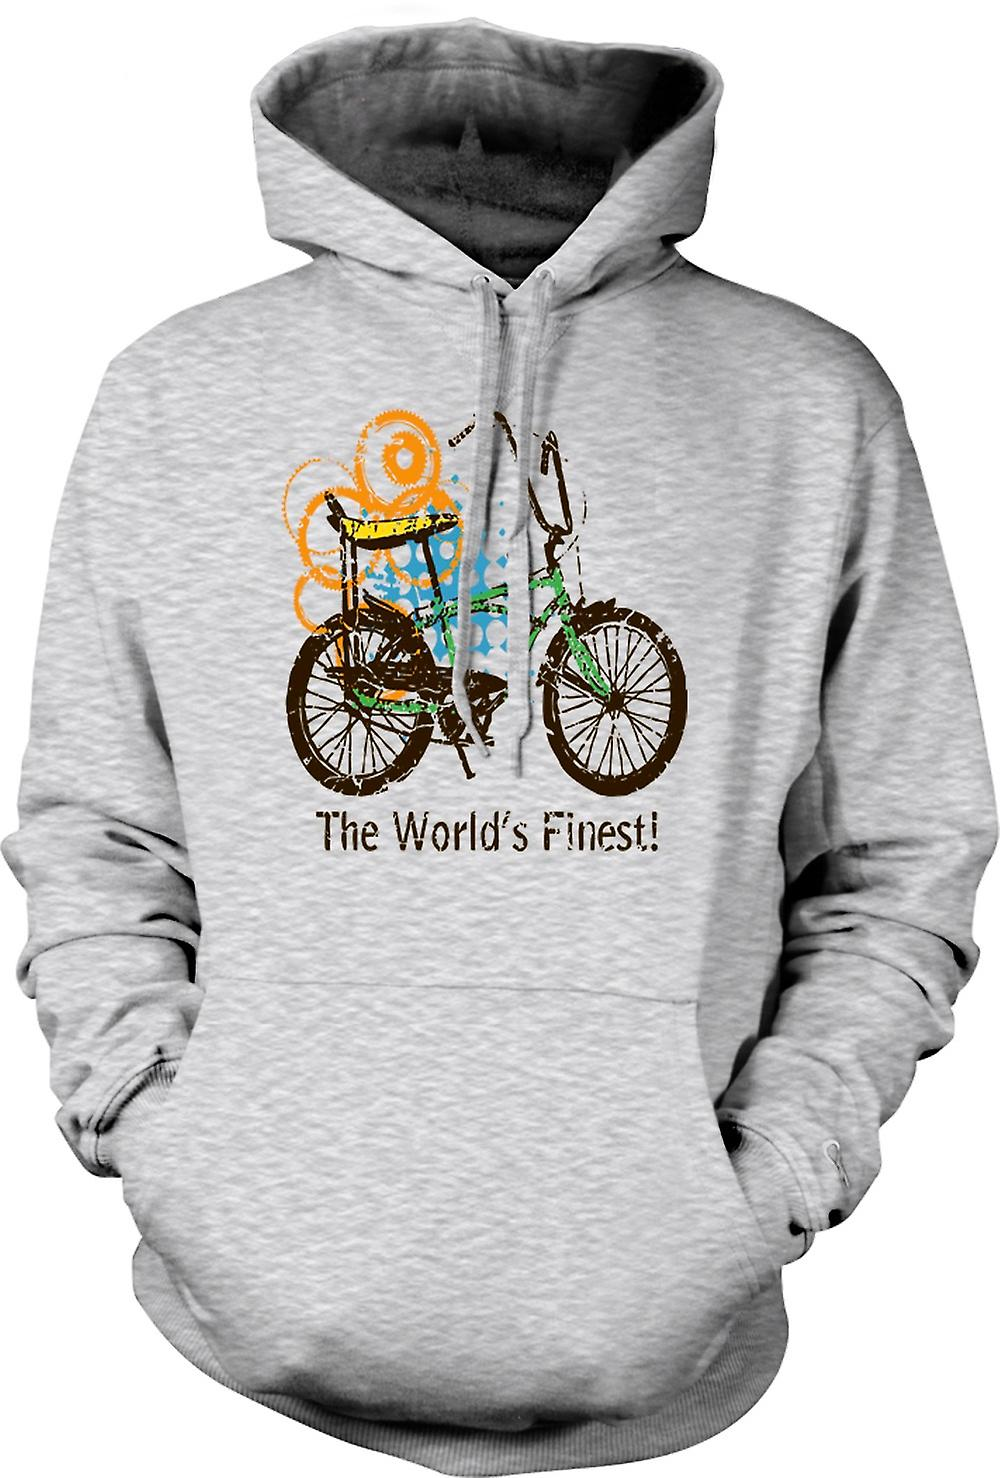 Mens Hoodie - Chopper Bike - il più belle del mondo - Funny Graphic Design